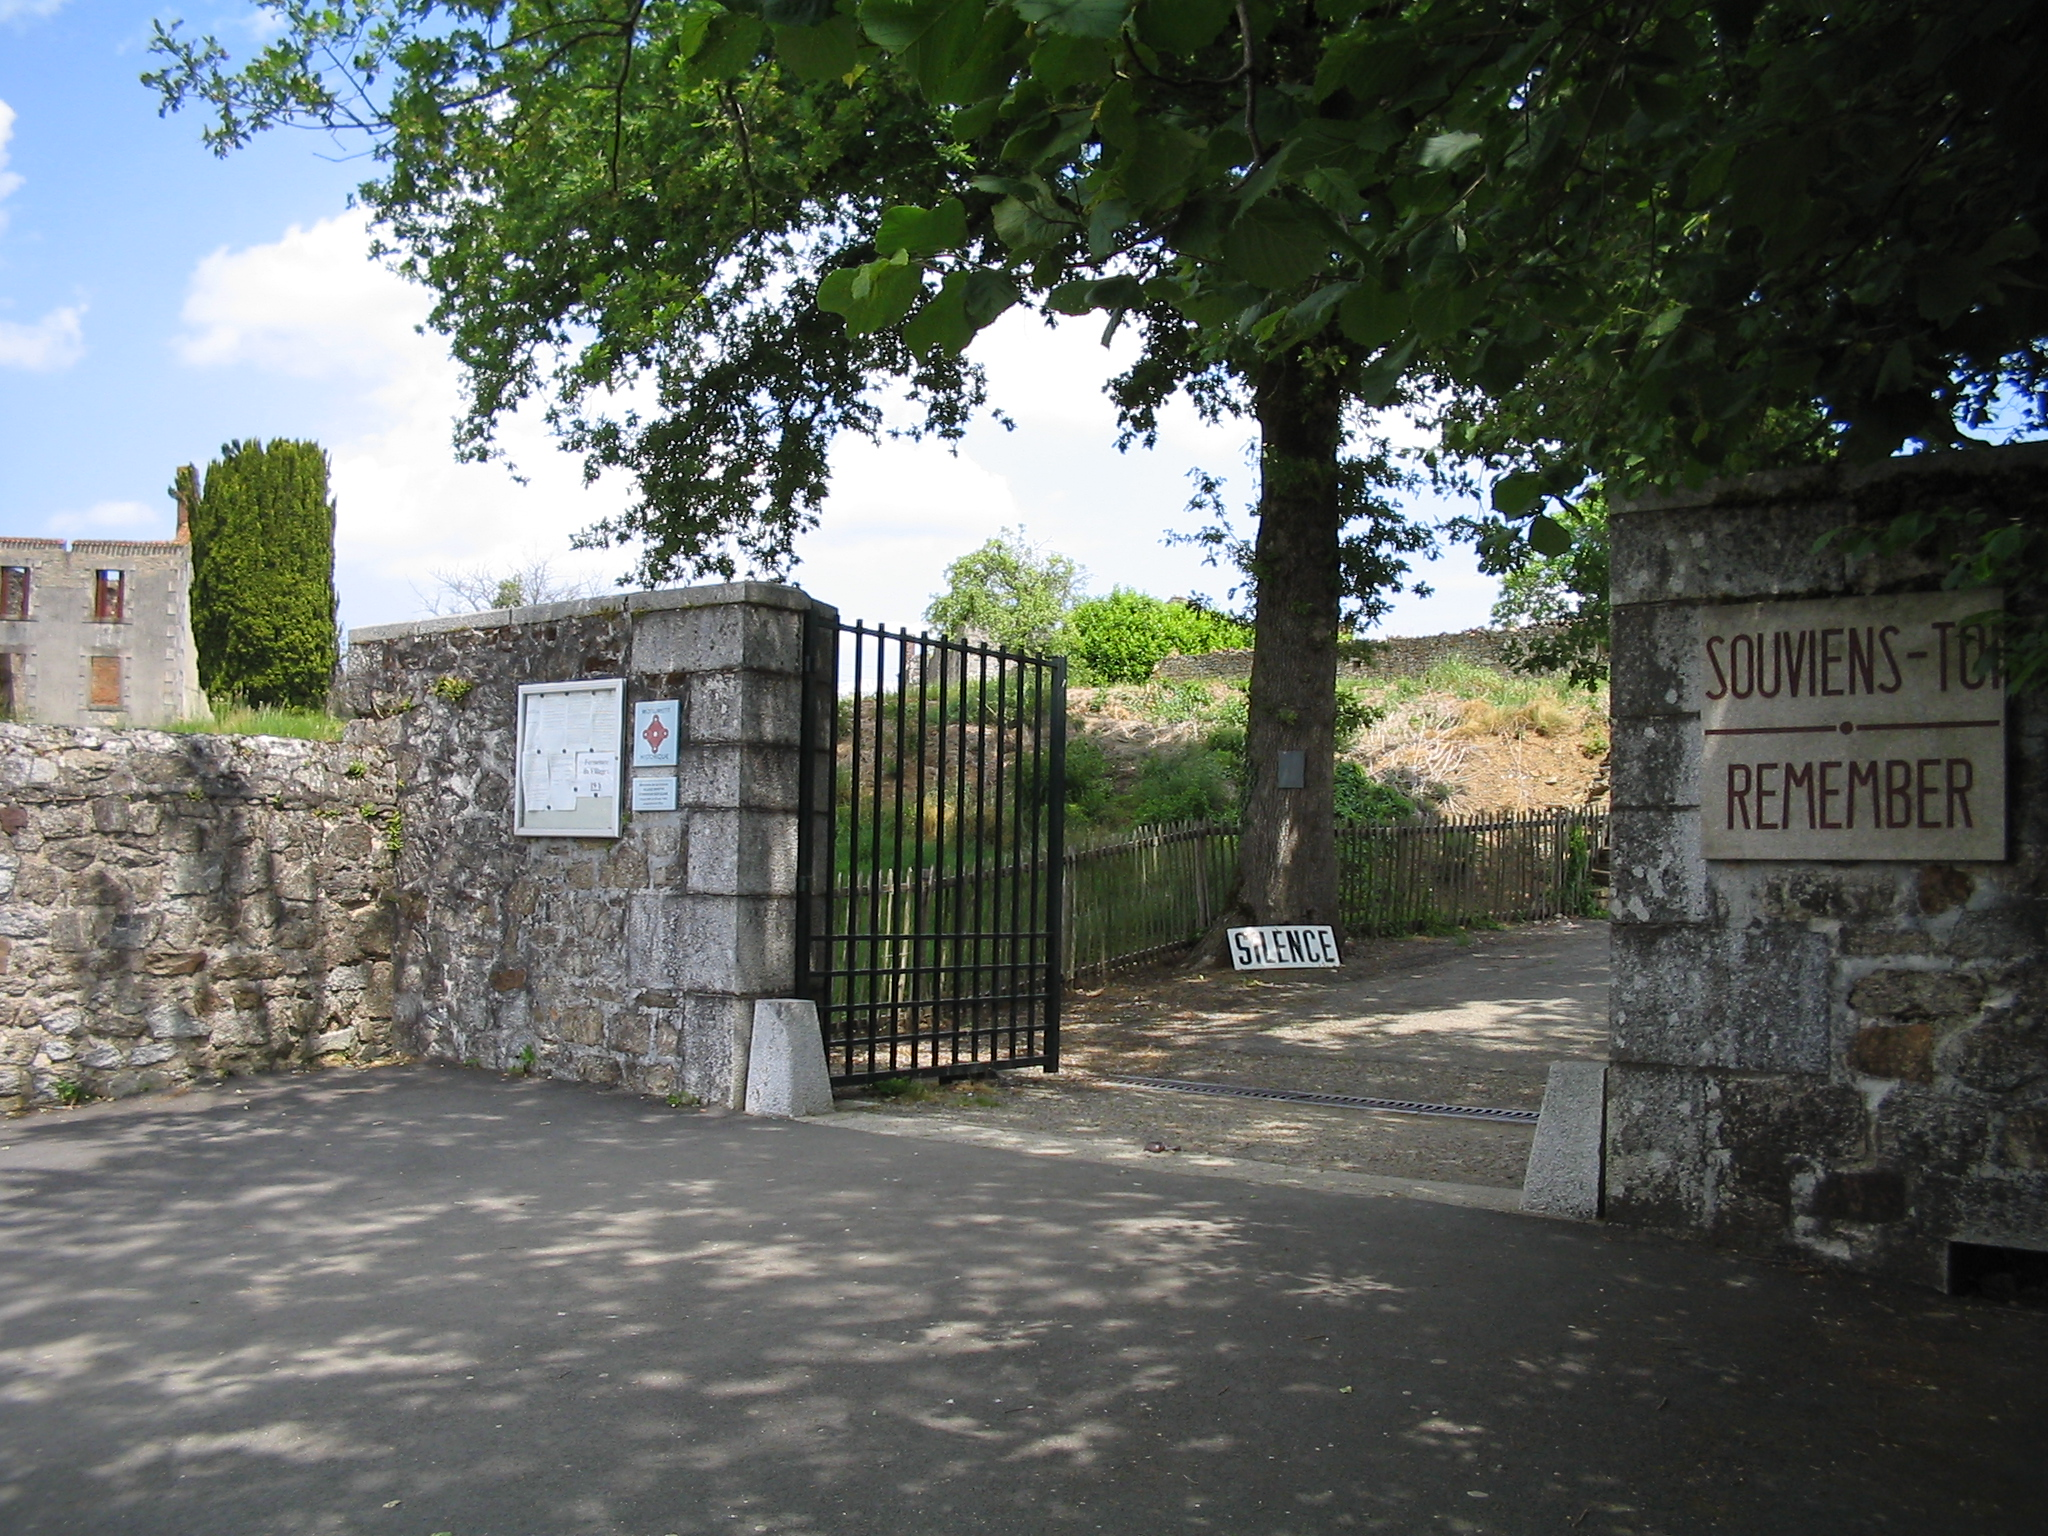 http://upload.wikimedia.org/wikipedia/commons/2/20/Oradour-sur-Glane-Entrance-1360.jpg